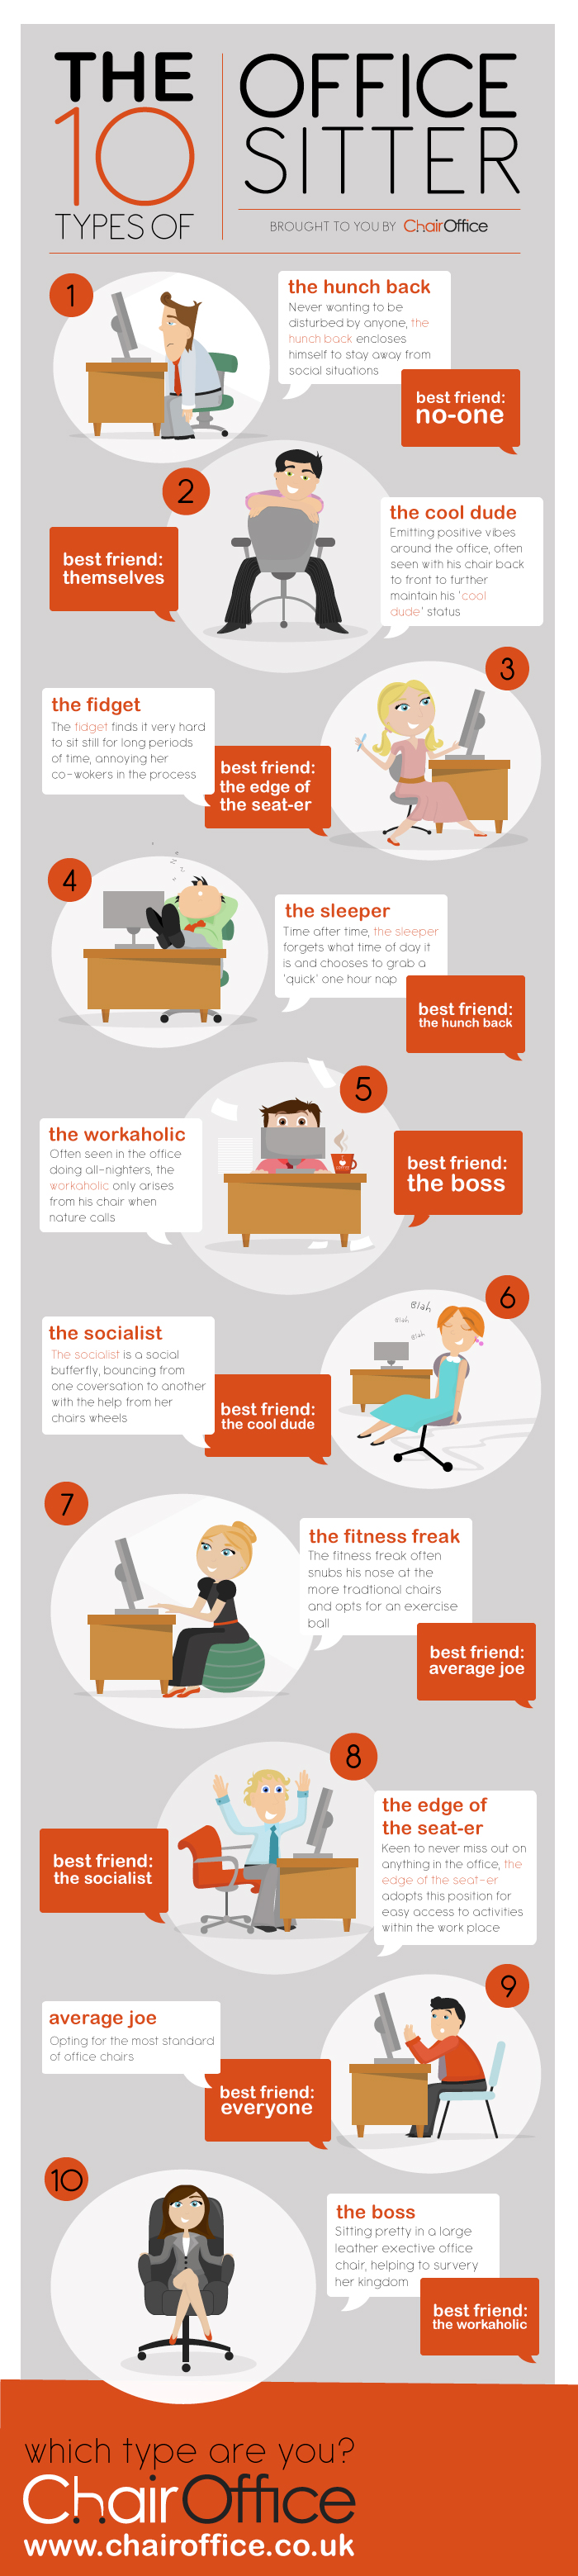 10 Types Of Office Sitter